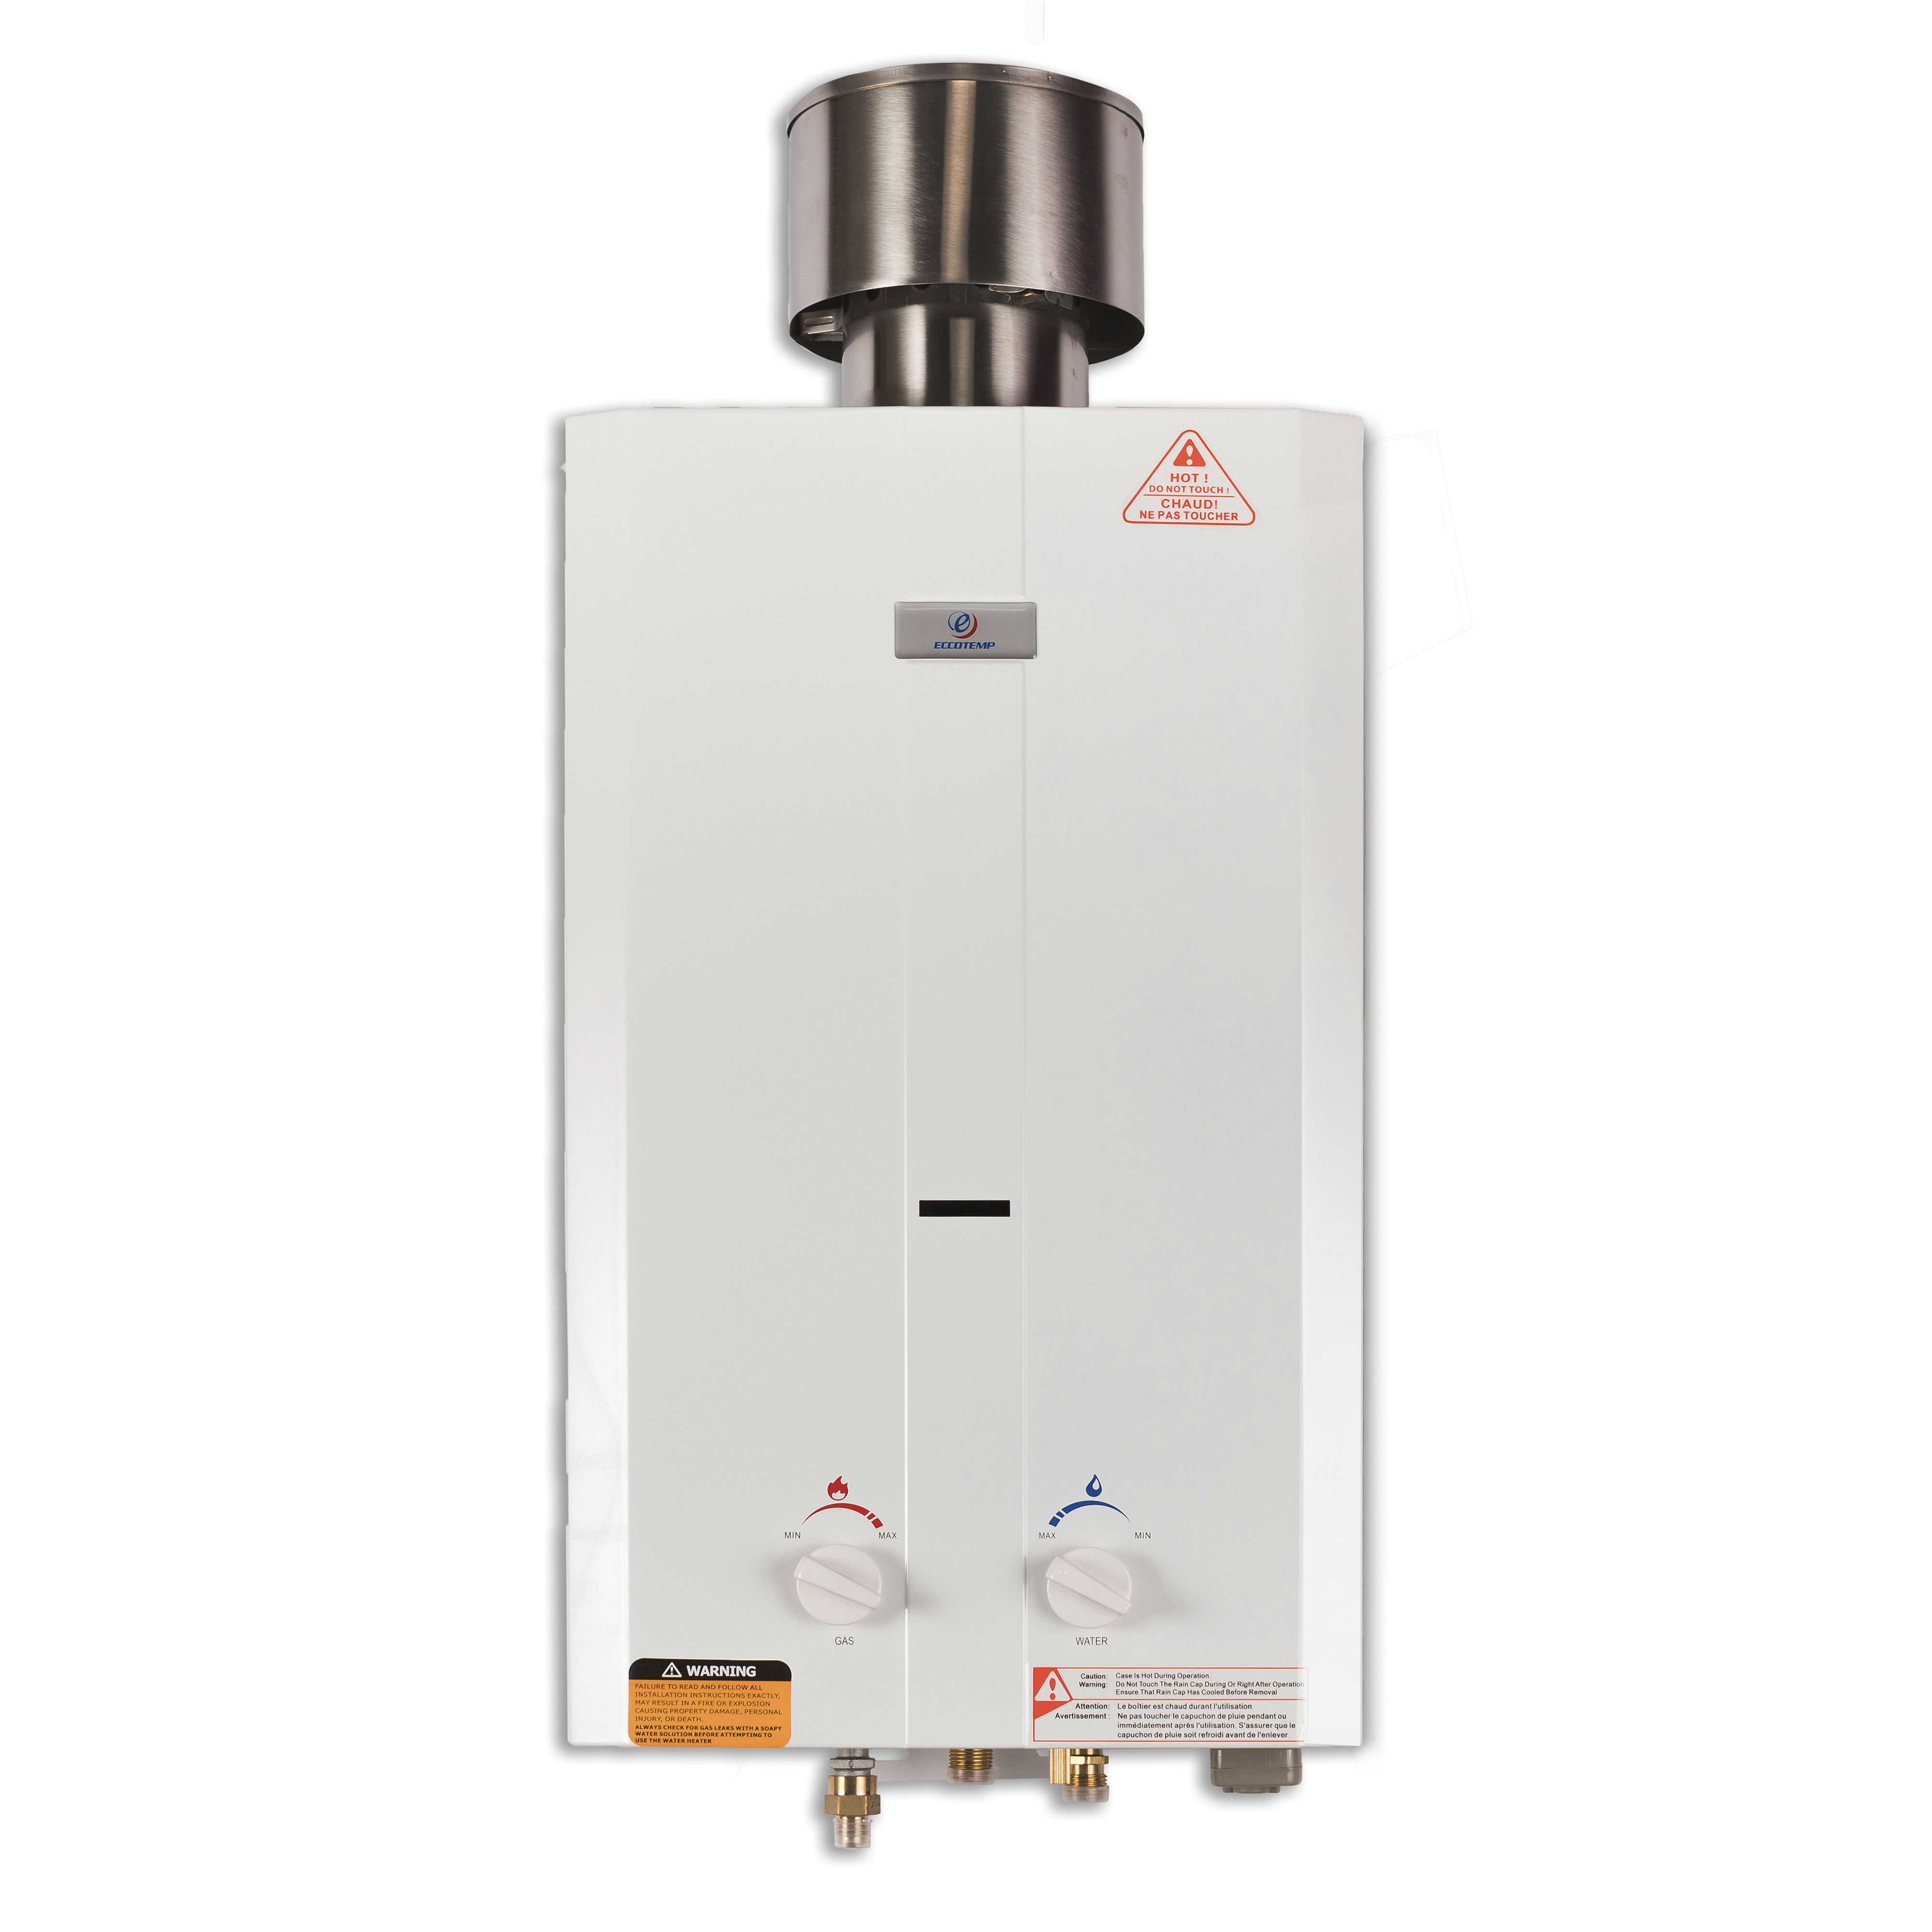 the eccotemp l10 tankless water heater serves as a portable shower